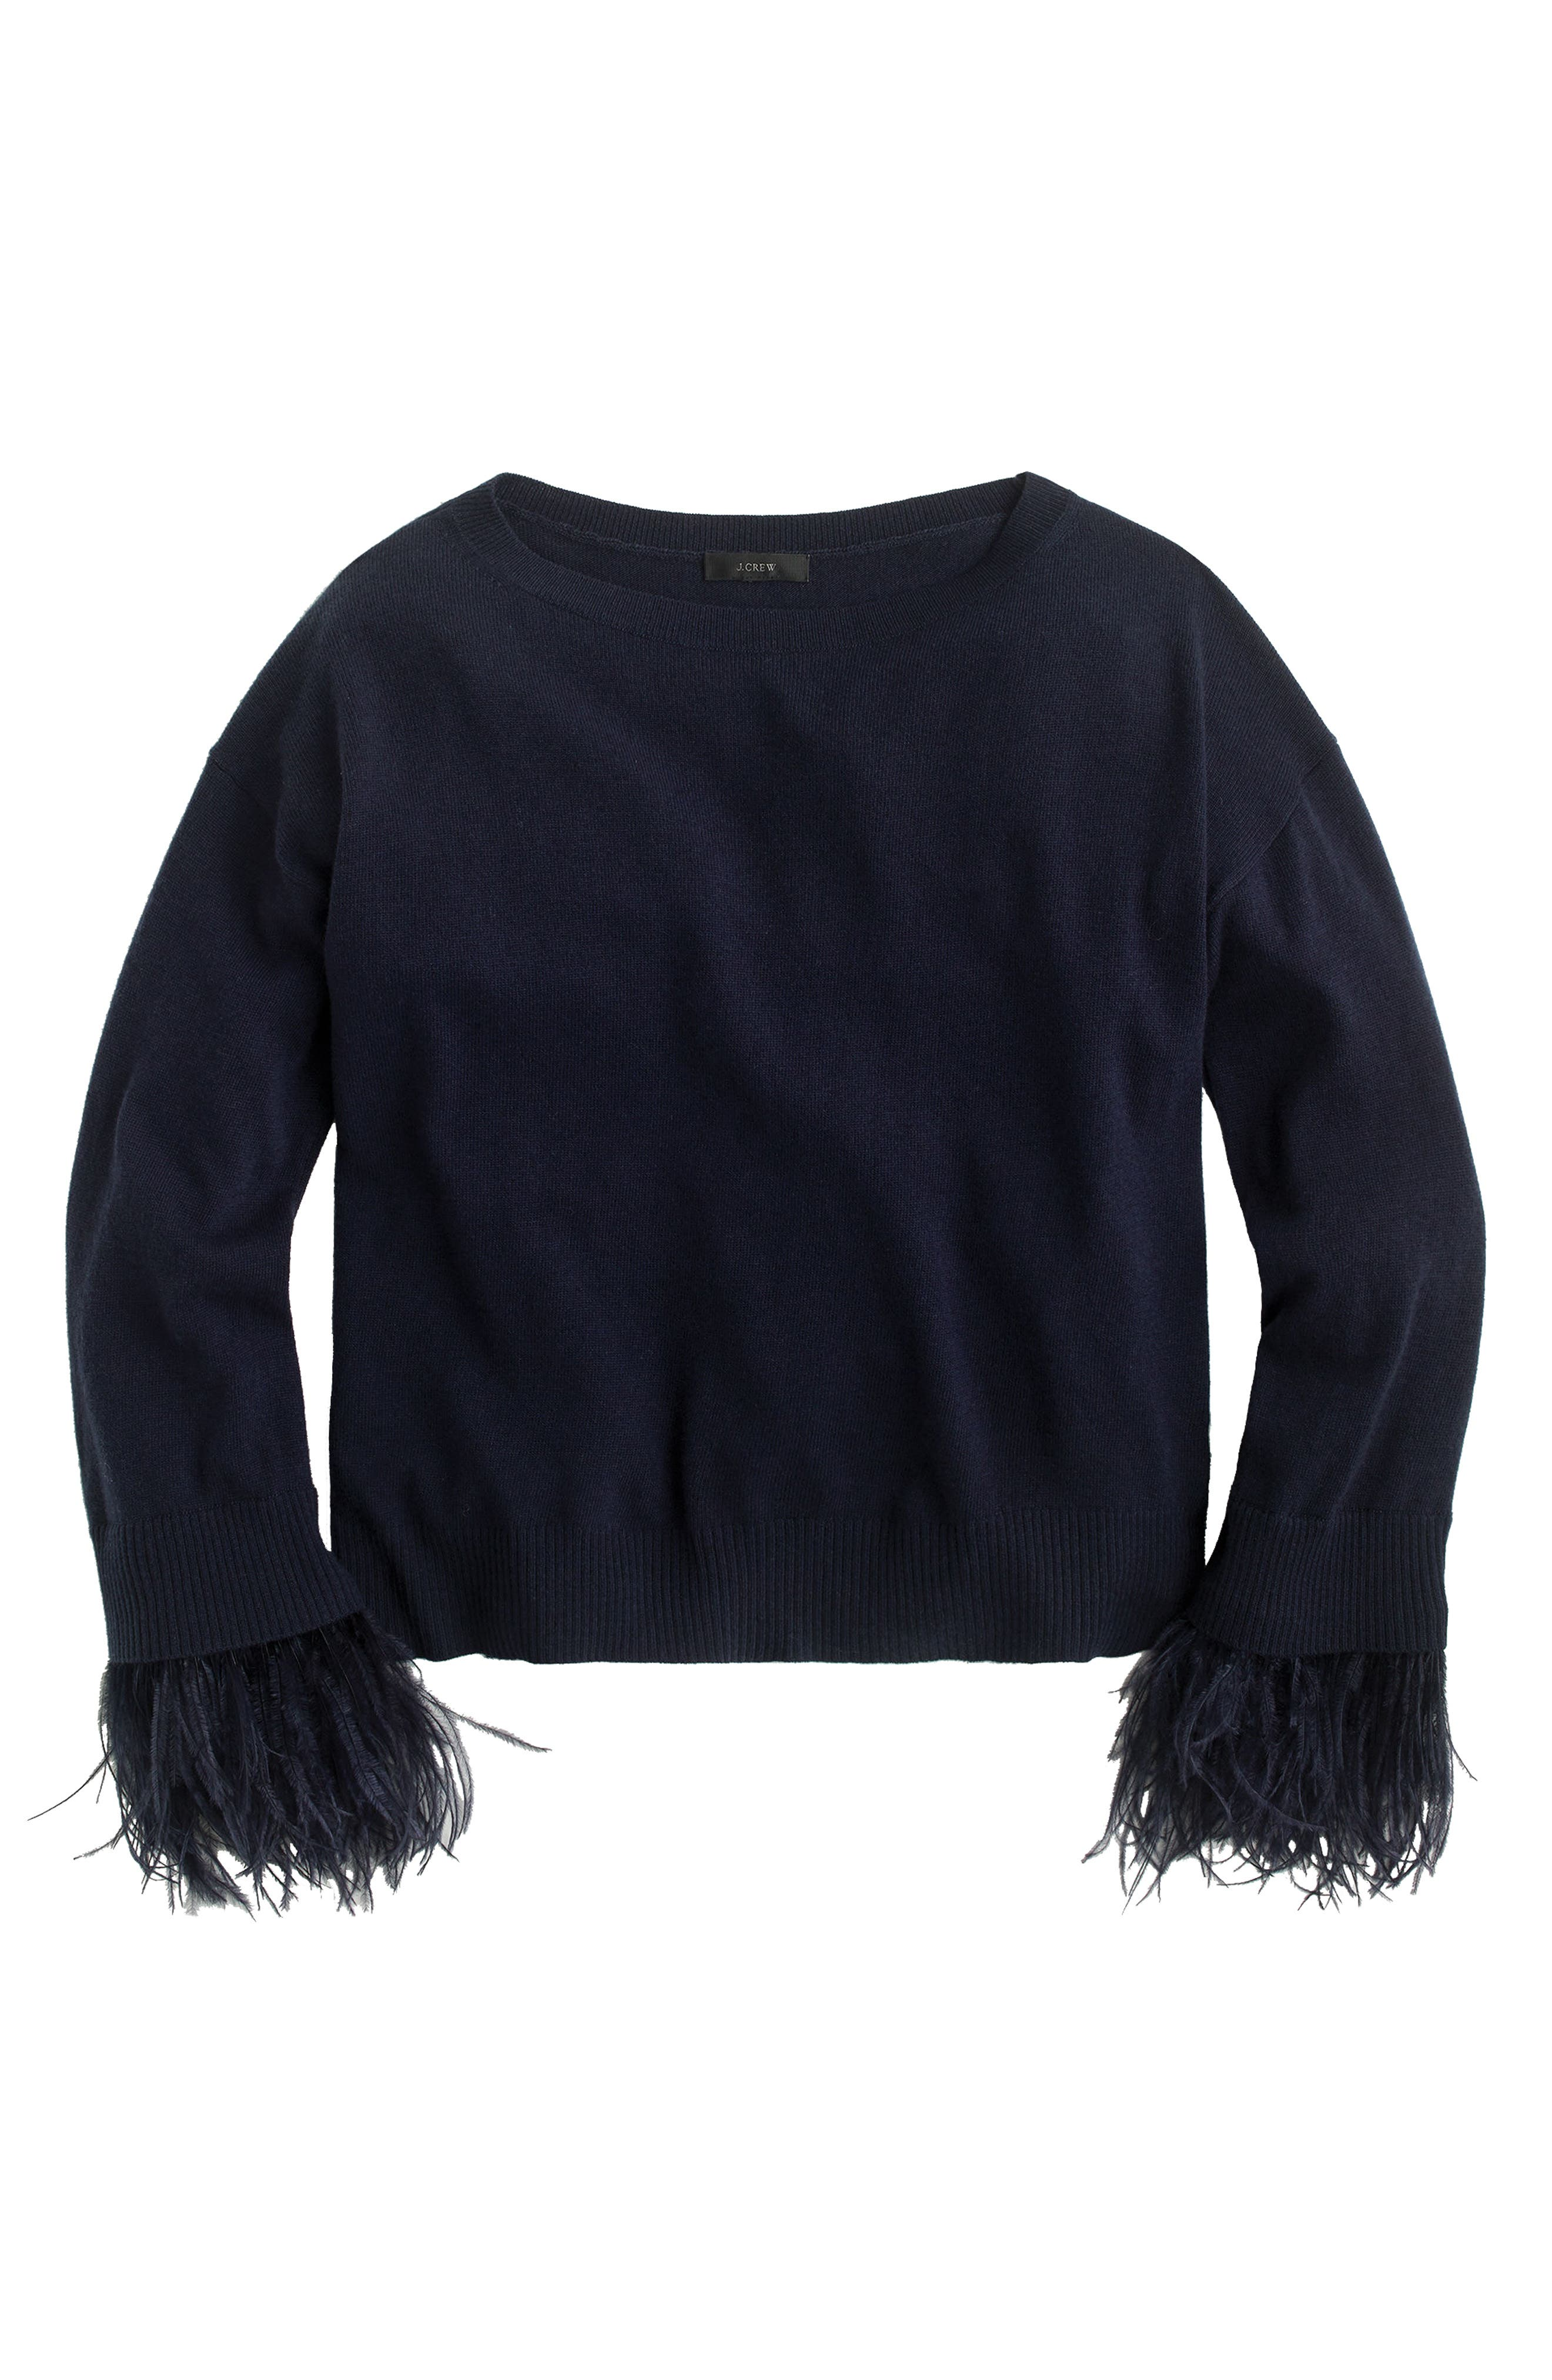 Feather Sleeve Crewneck Sweater,                         Main,                         color, Navy